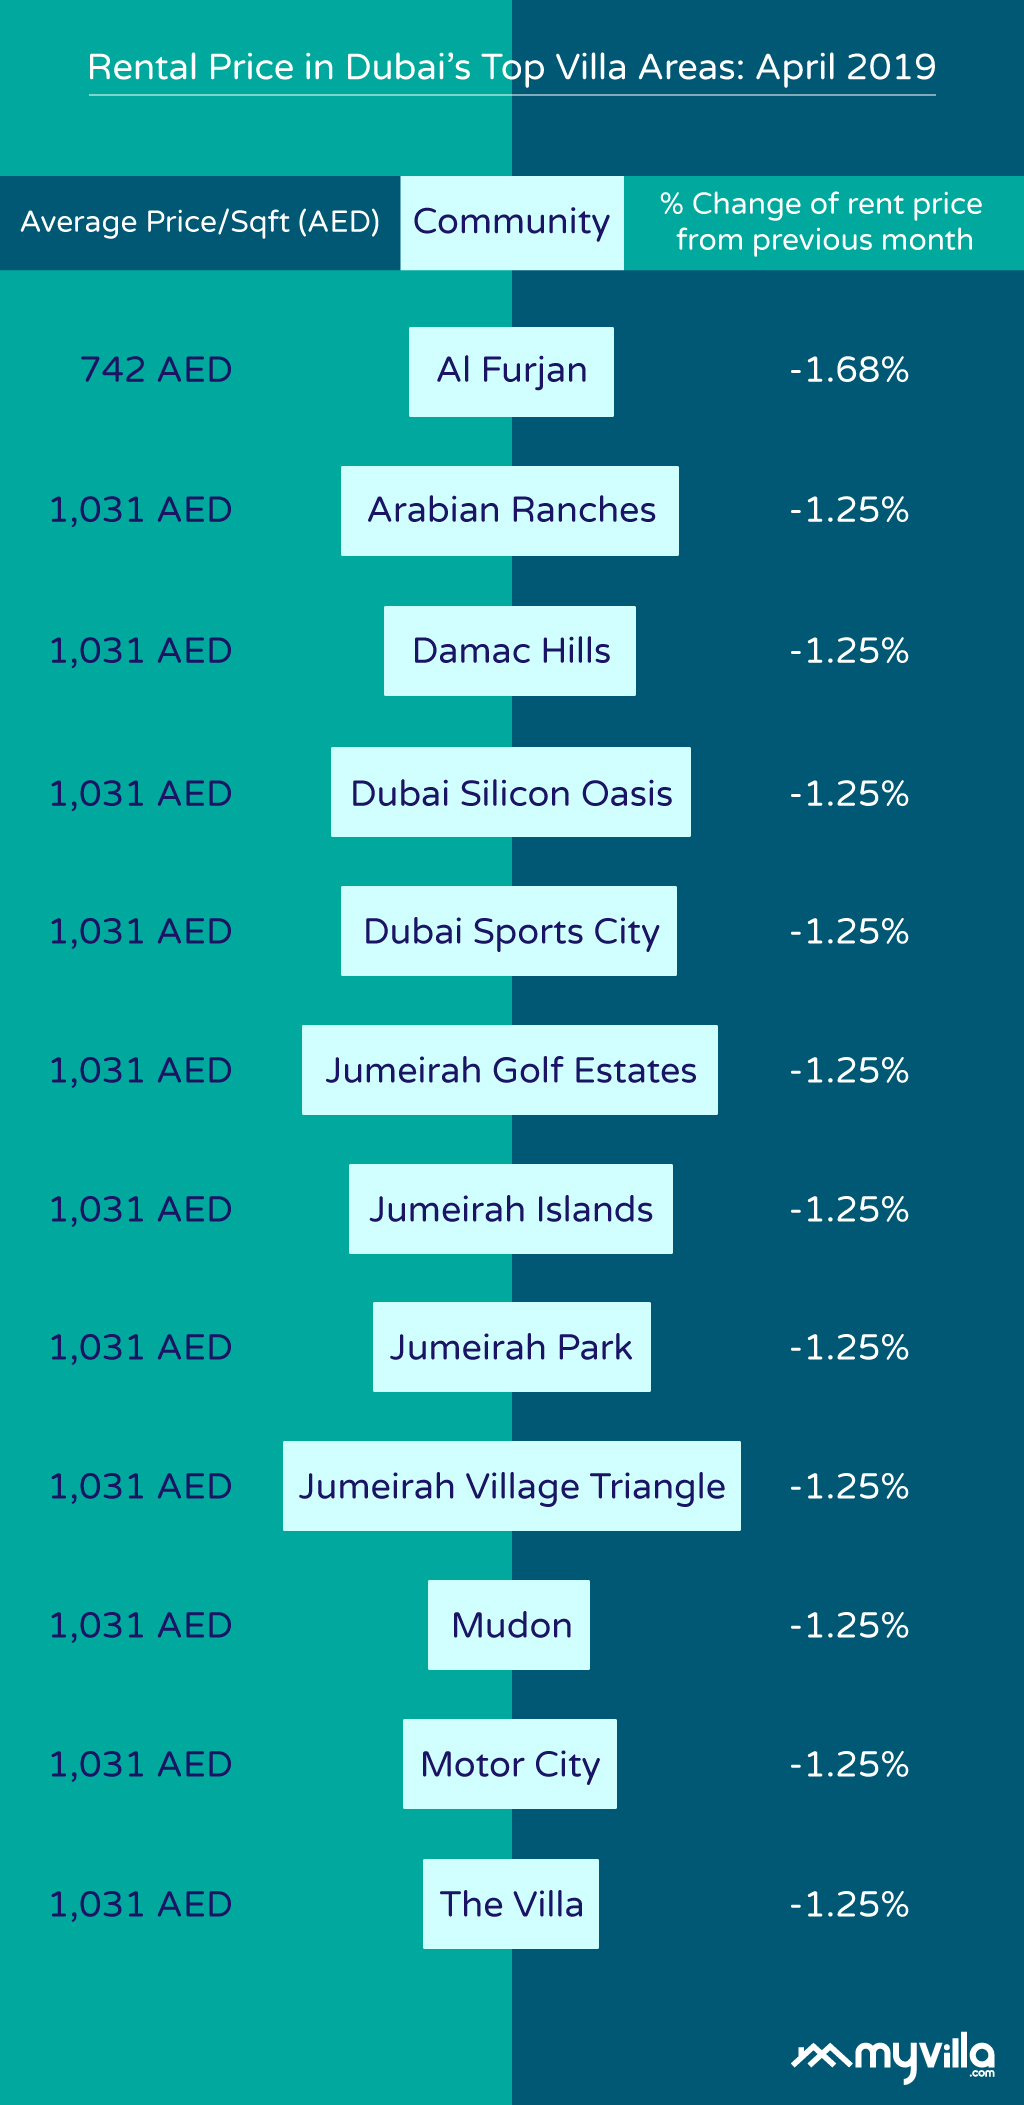 Rental prices for villas in top Dubai communities for April 2019